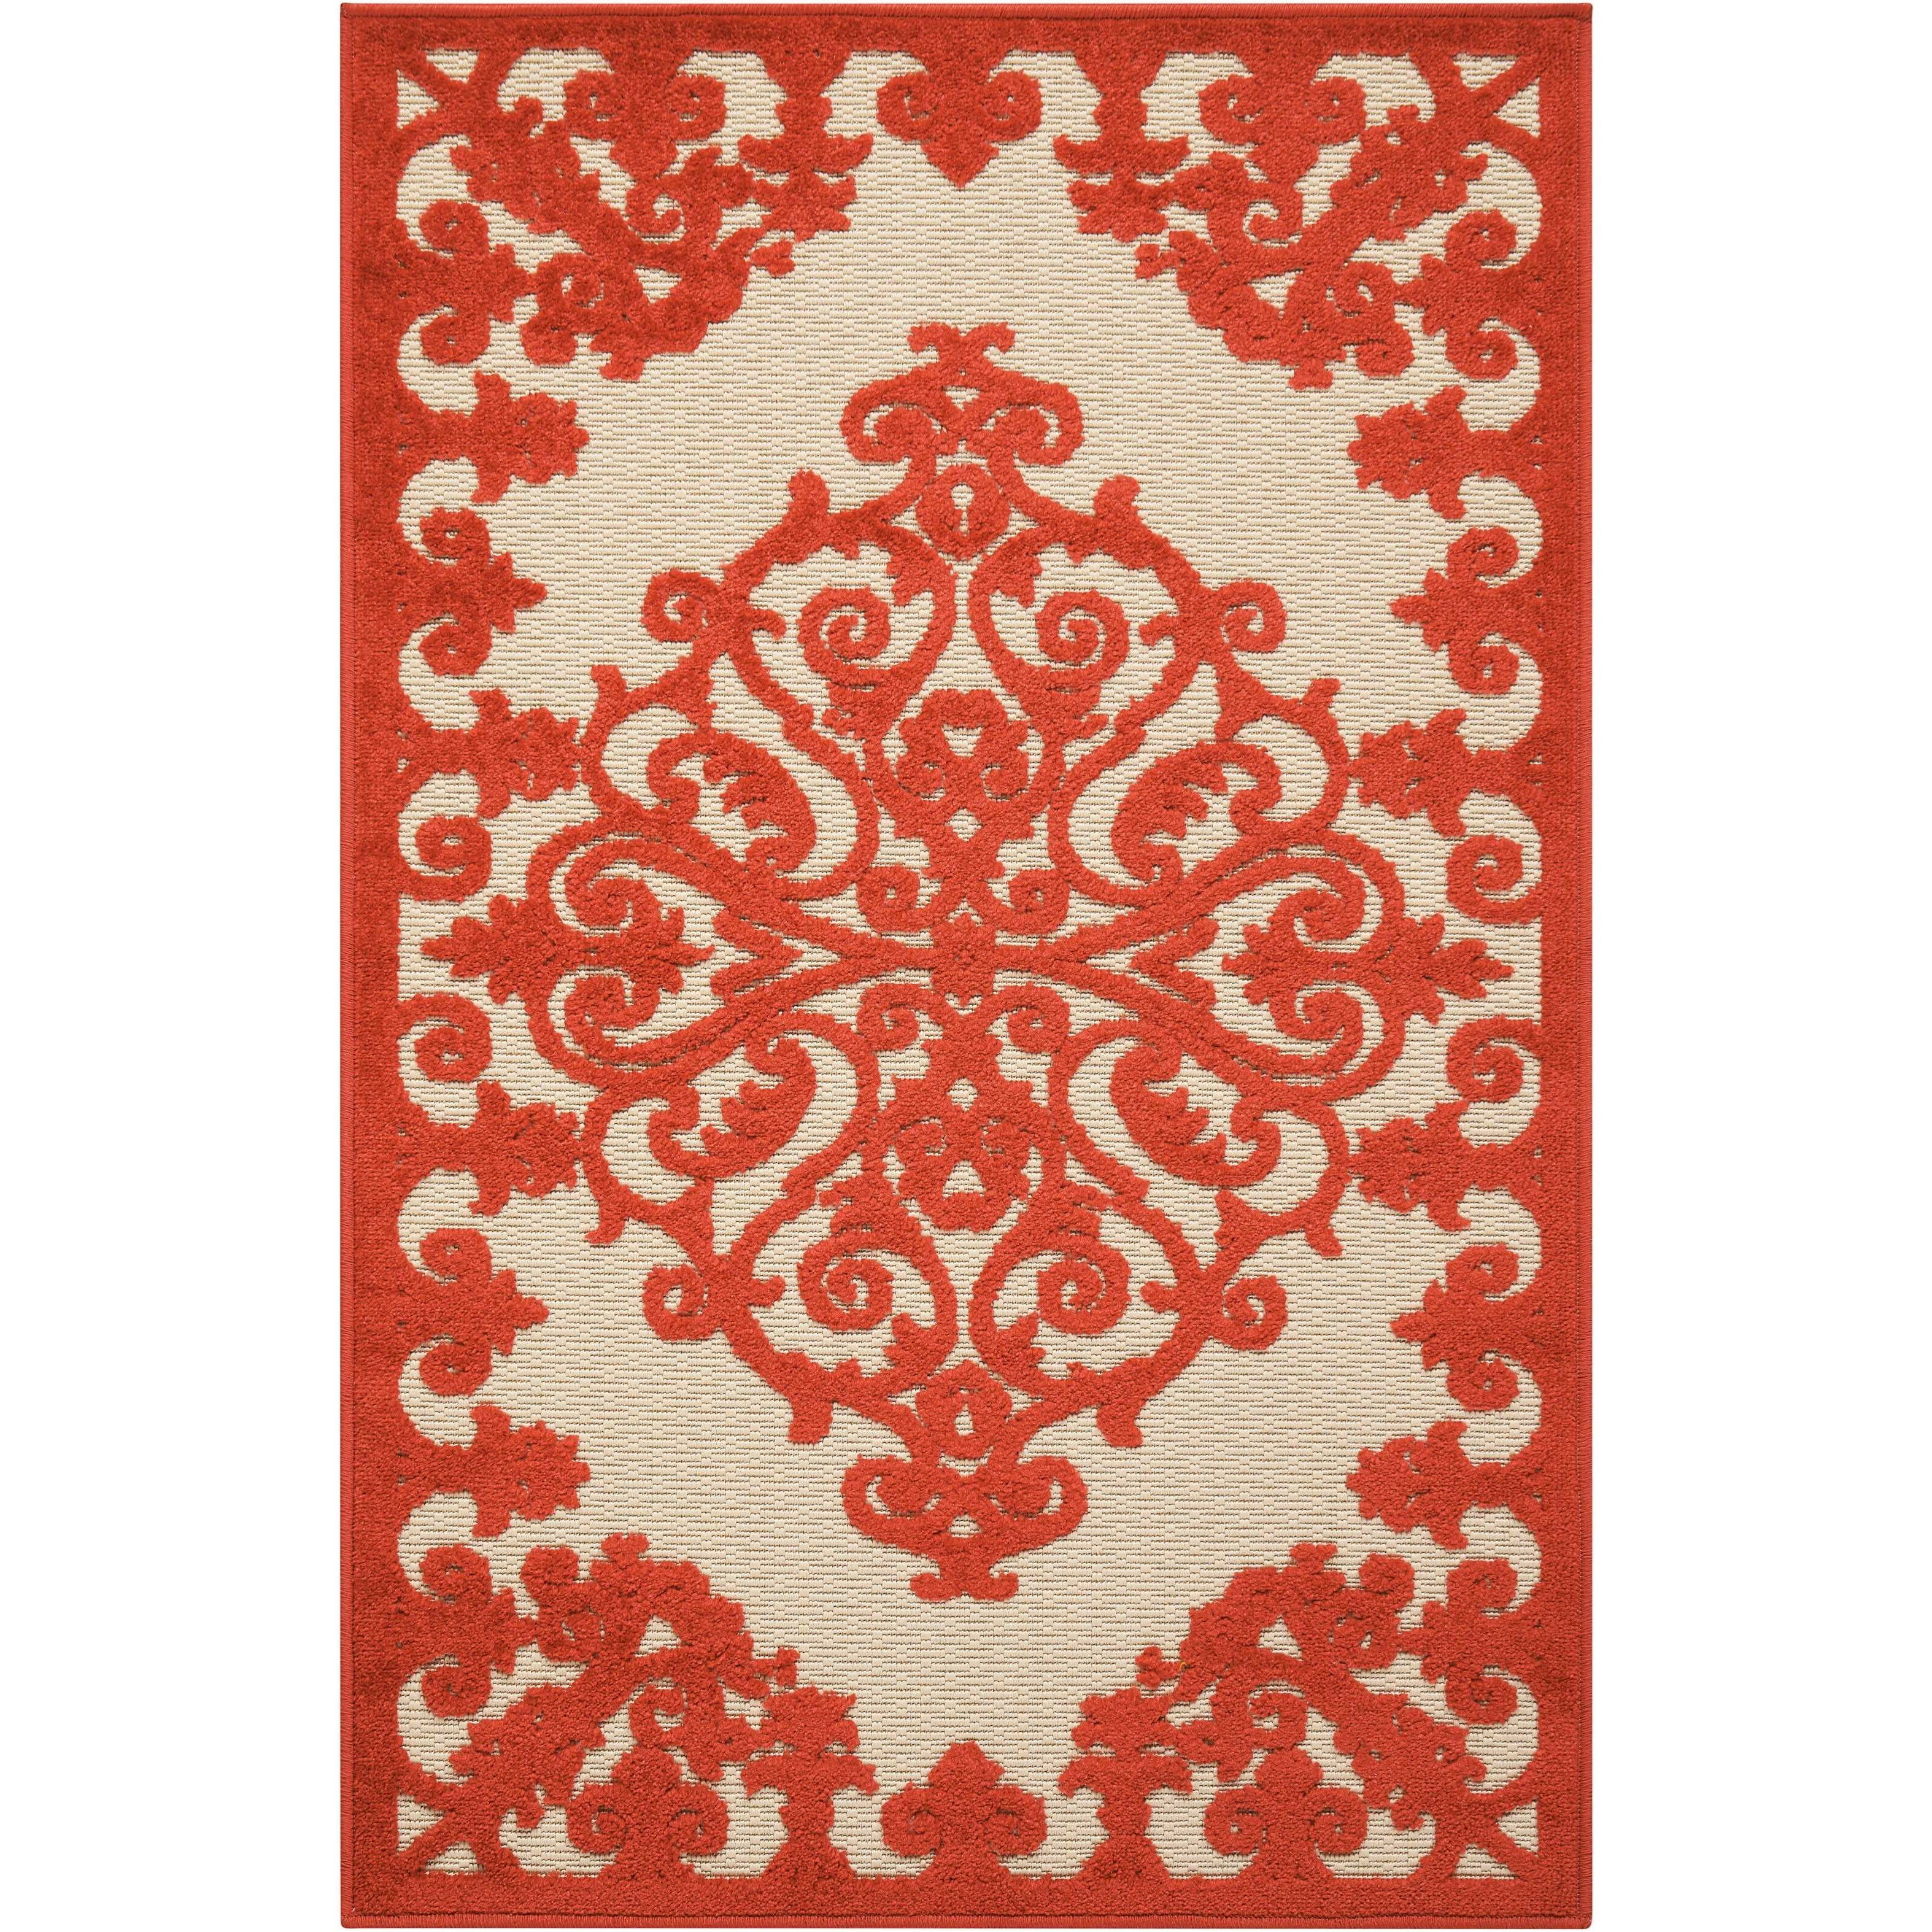 "Aloha 2'8"" x 4' Red Rectangle Rug by Nourison at Sprintz Furniture"